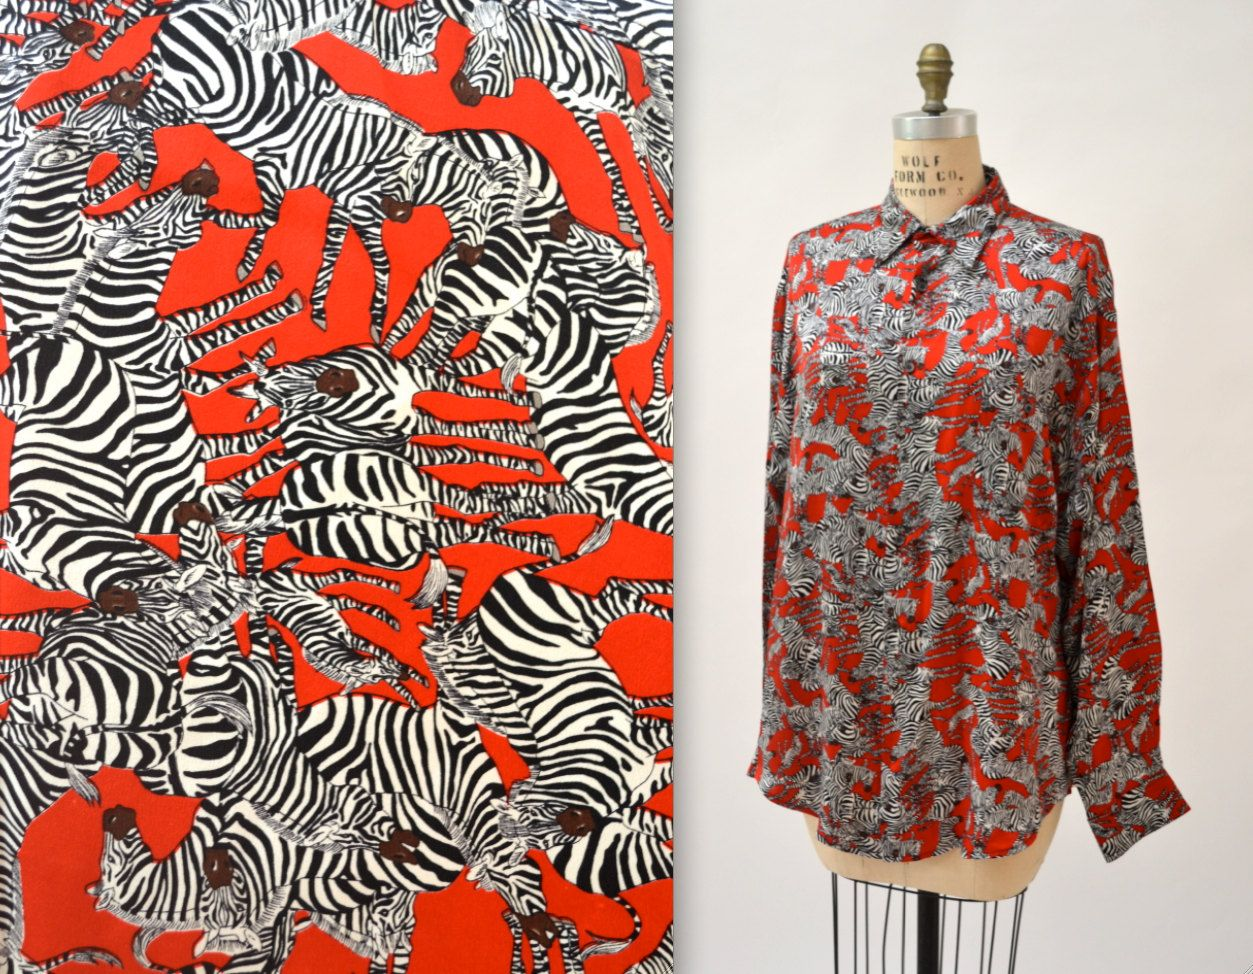 08bec955 90s Zebra Animal Print Nicole Miller Silk Shirt Size Medium Large// Black  White and Red Silk Shirt Blouse with Zebras by Hookedonhoney on Etsy